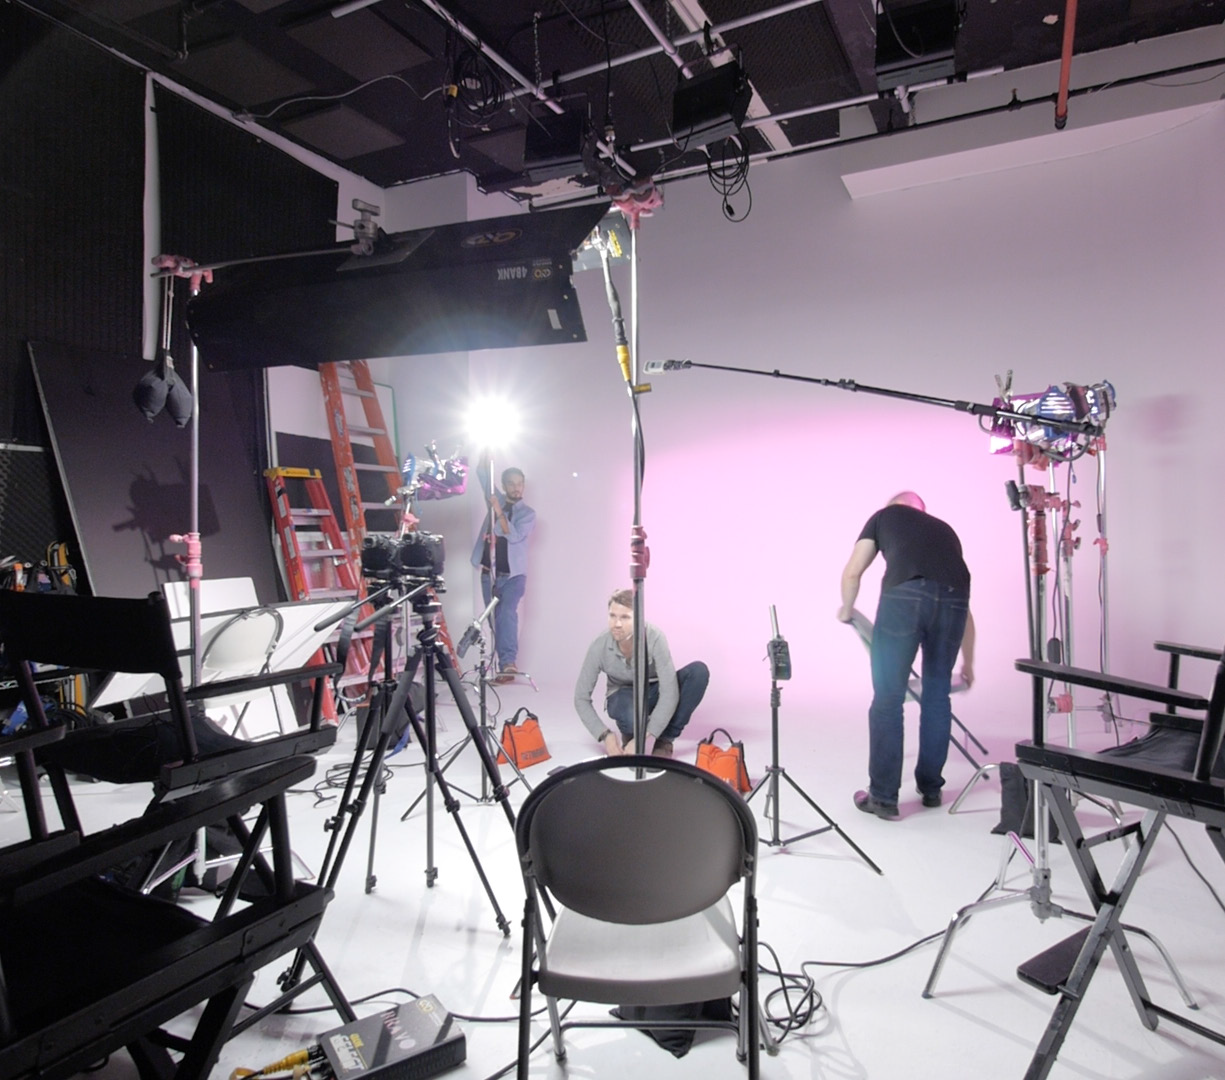 Professional, Video Marketing Near Hunterdon County, NJ - Top Notch Cinema - About-us